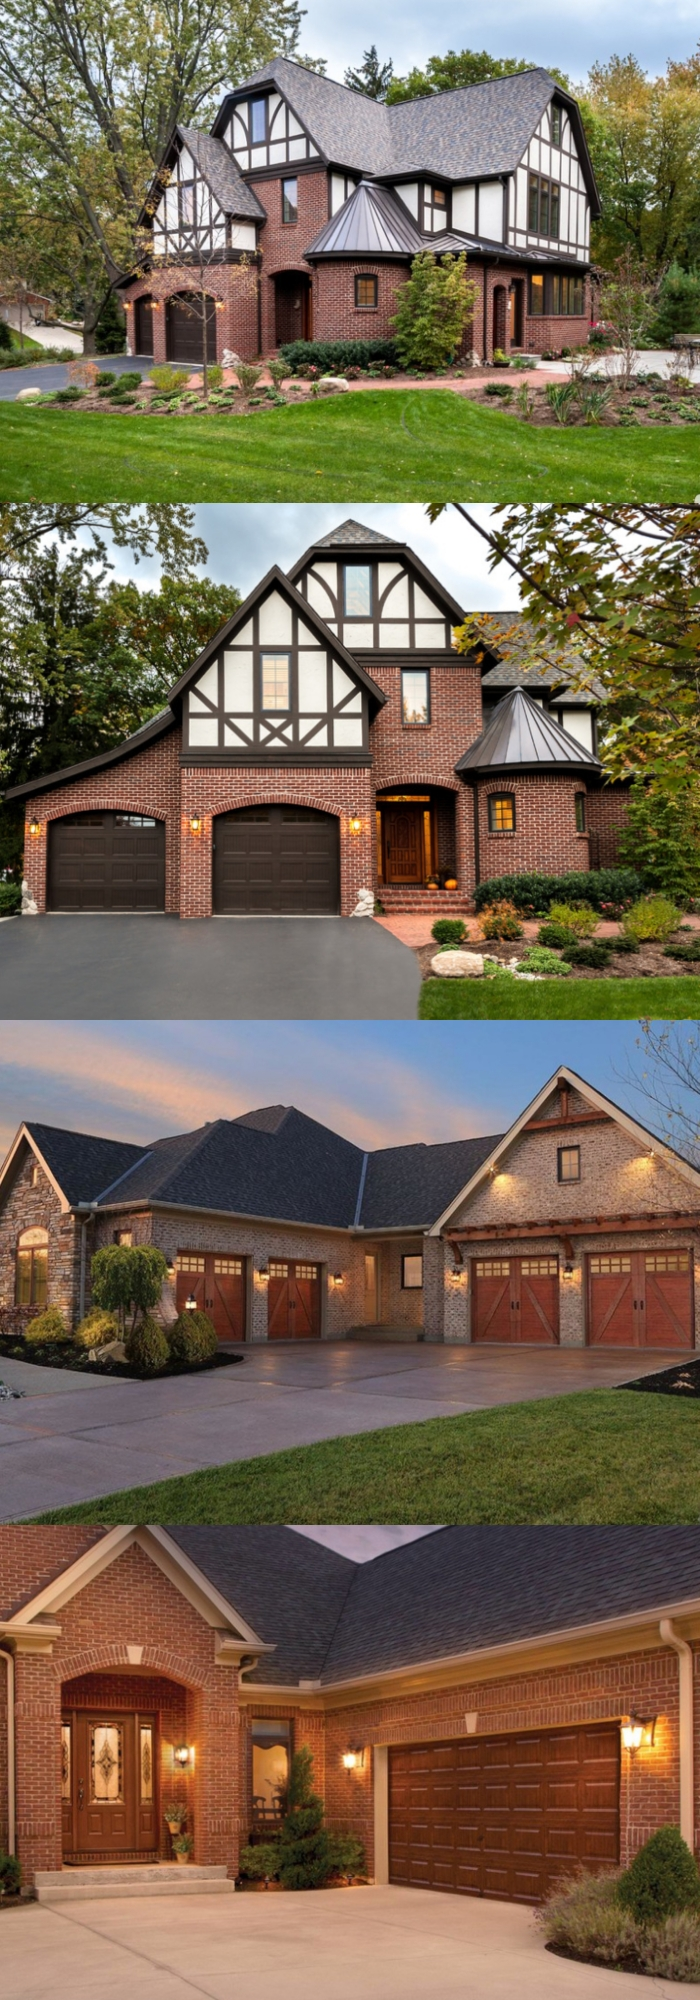 Brick Cool door garage ideas